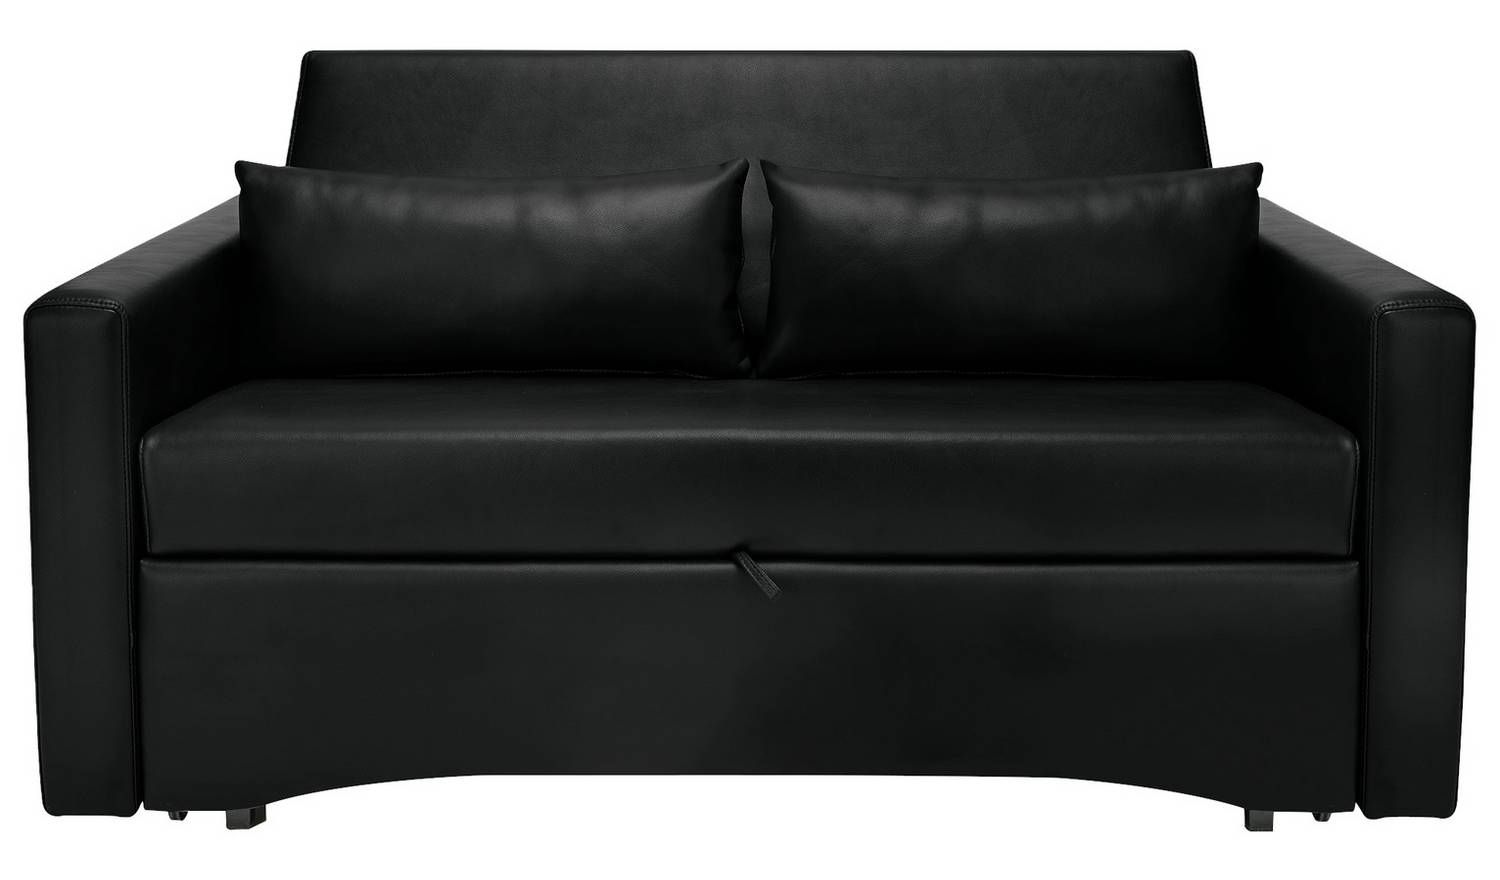 Buy Argos Home Reagan 2 Seater Faux Leather Sofa Bed Dark Brown Sofa Beds Argos Faux Leather Sofa Leather Sofa Bed Sofa Deals